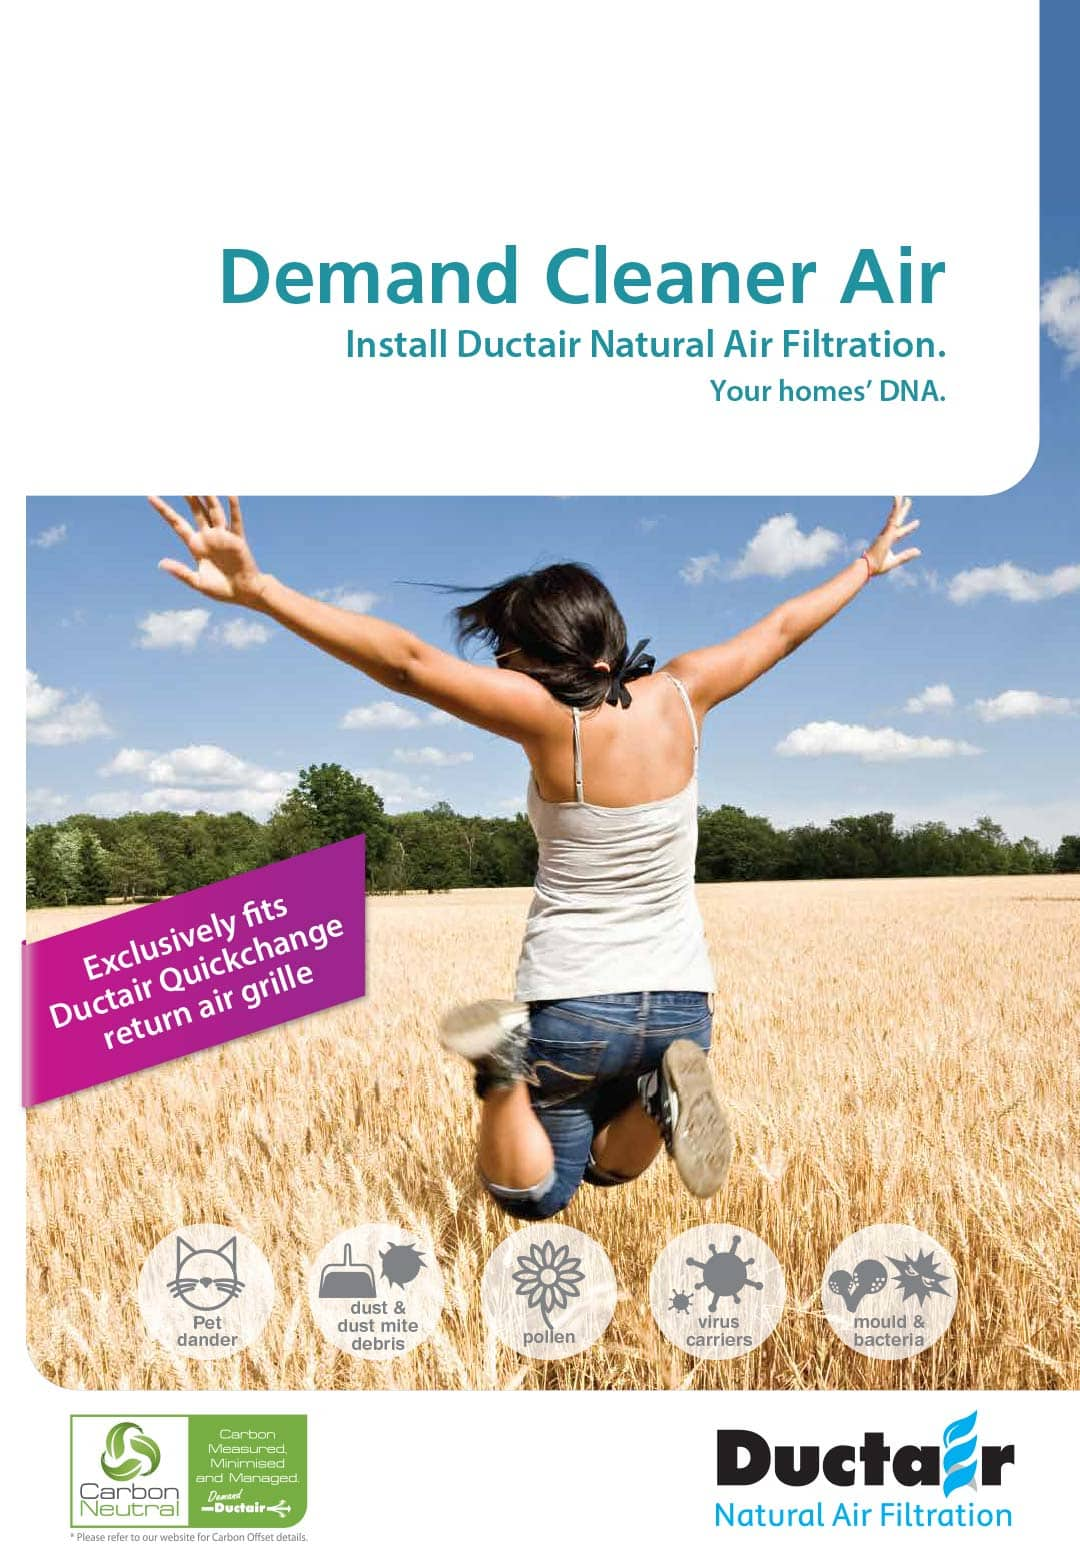 Demand Cleaner Air